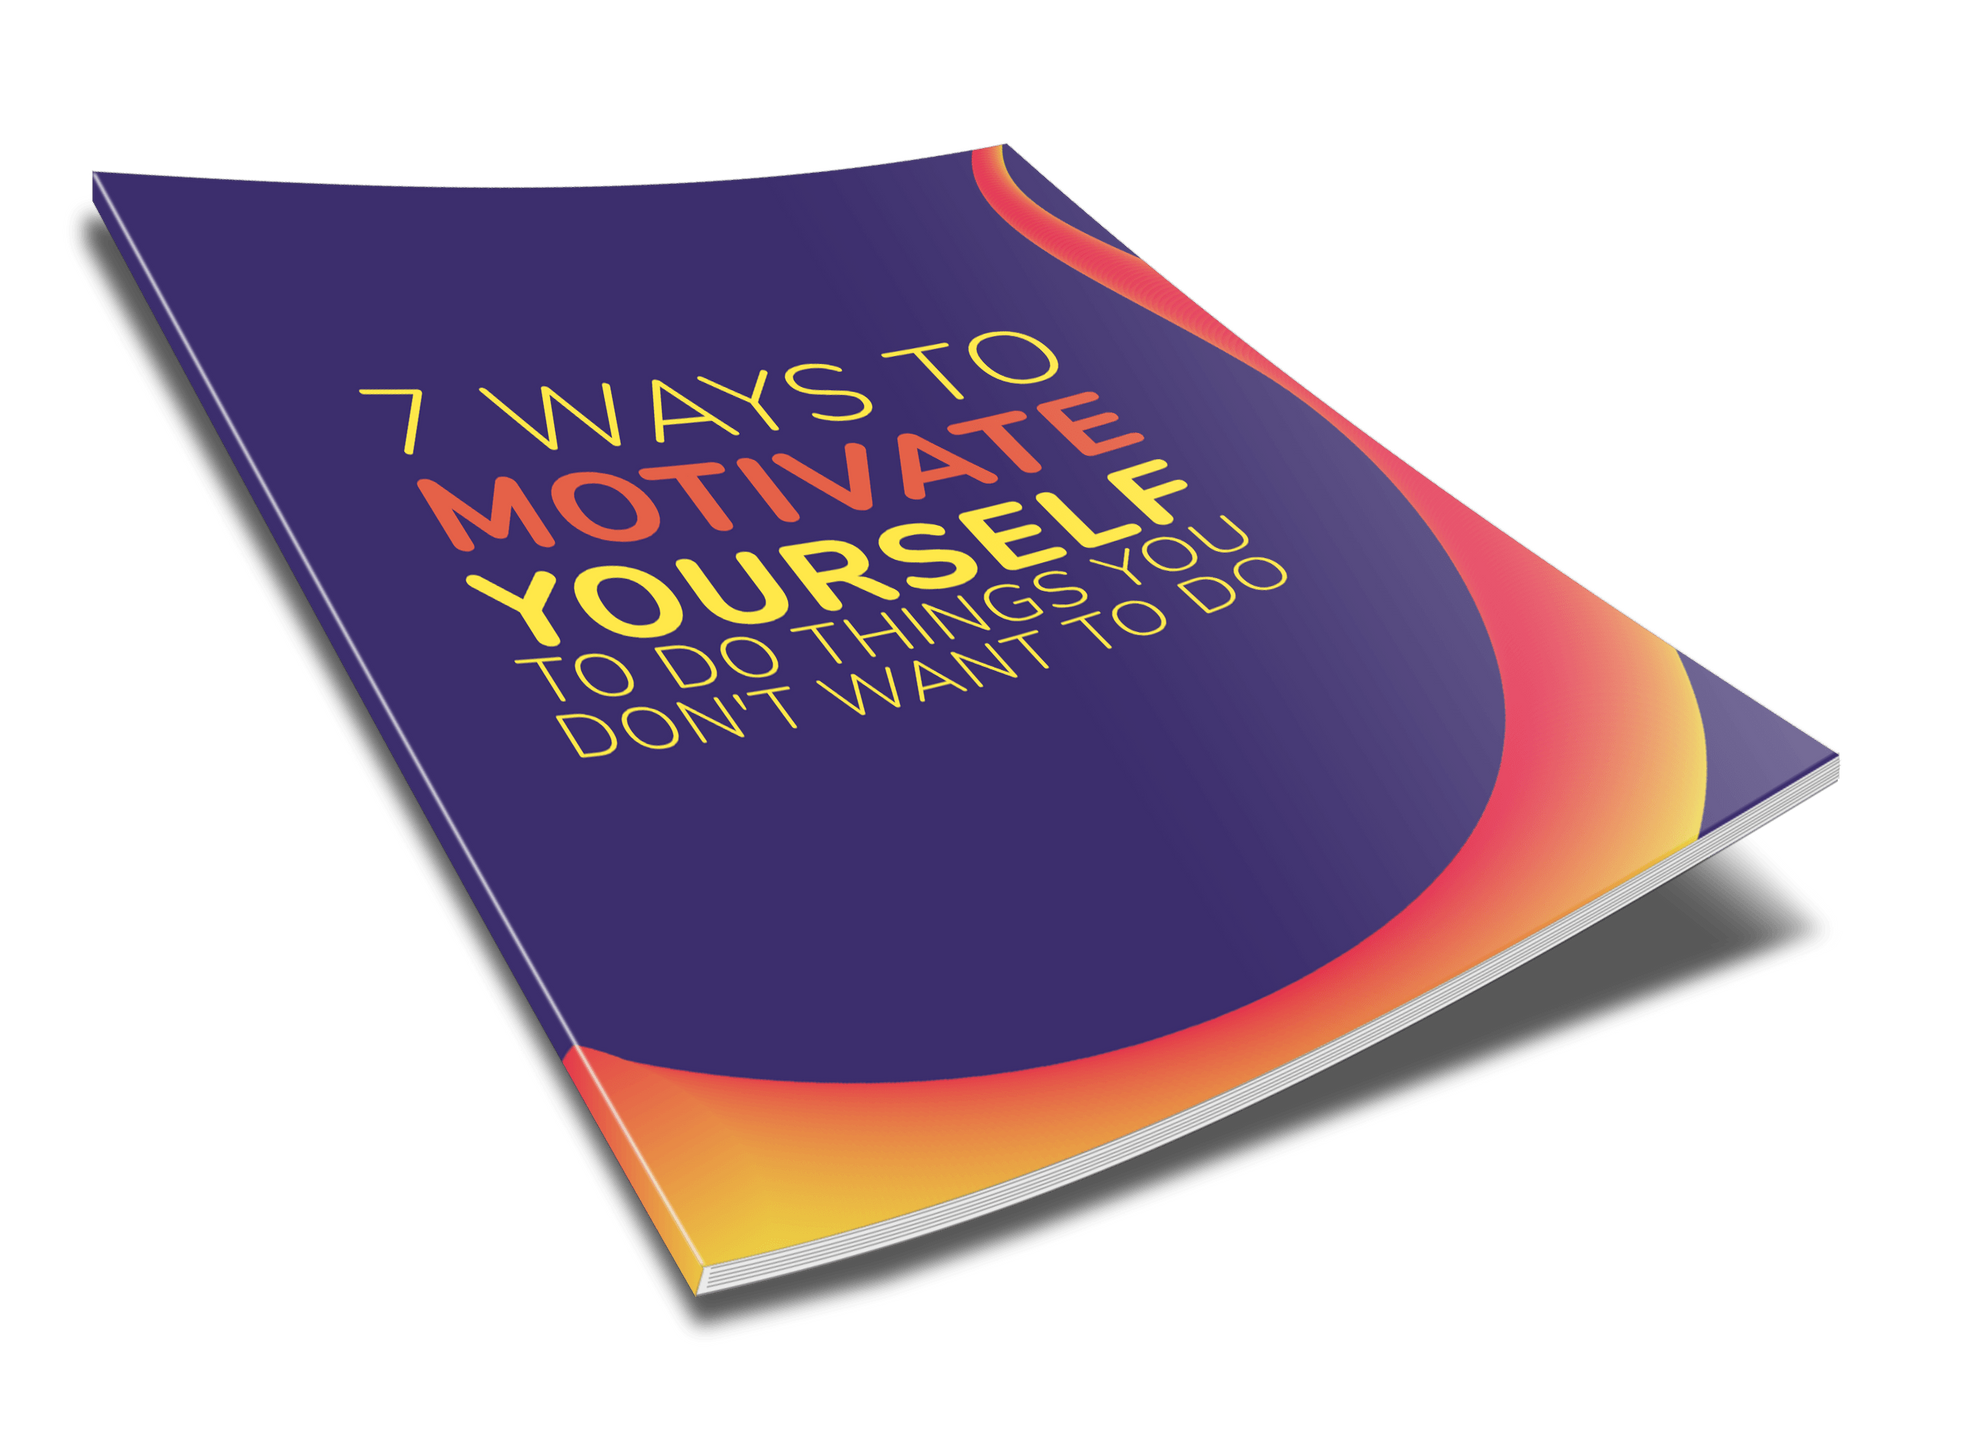 eBook: 7 ways to Motivate Yourself to Do Things You Don't Want to Do